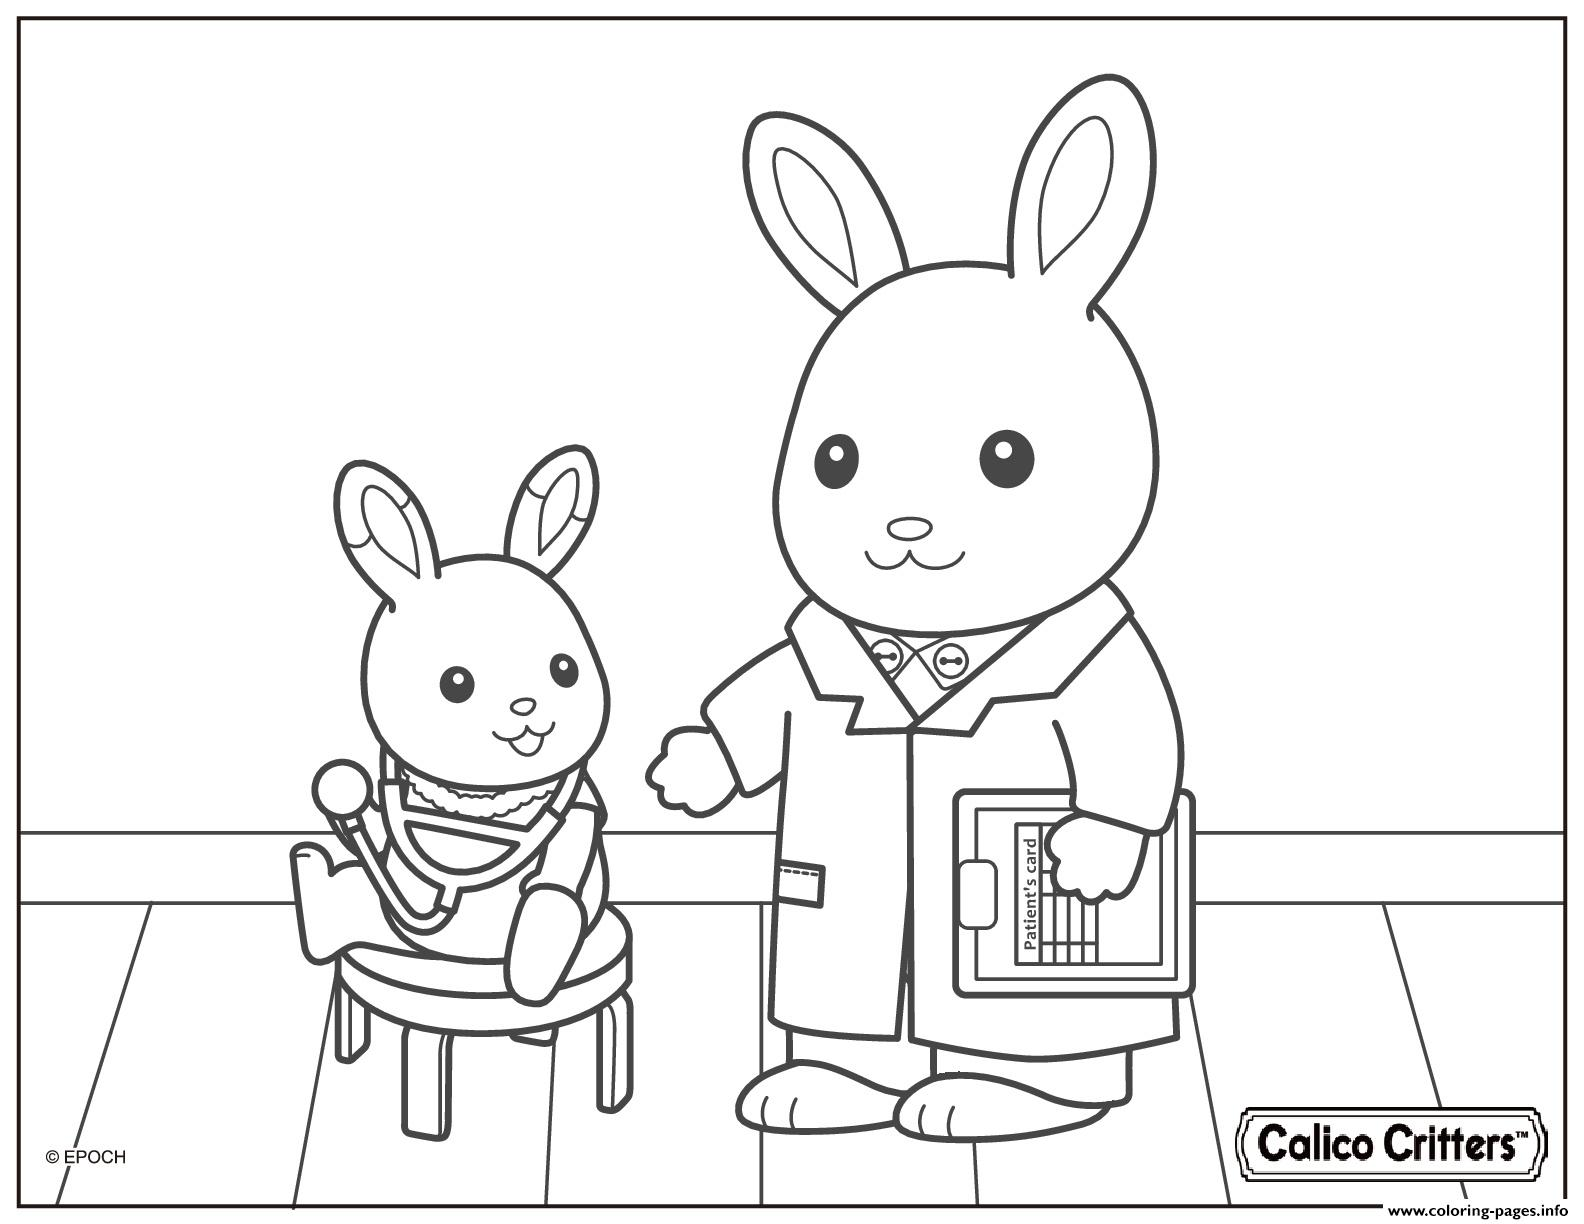 Calico critters doctor health coloring pages printable for Little critter coloring pages